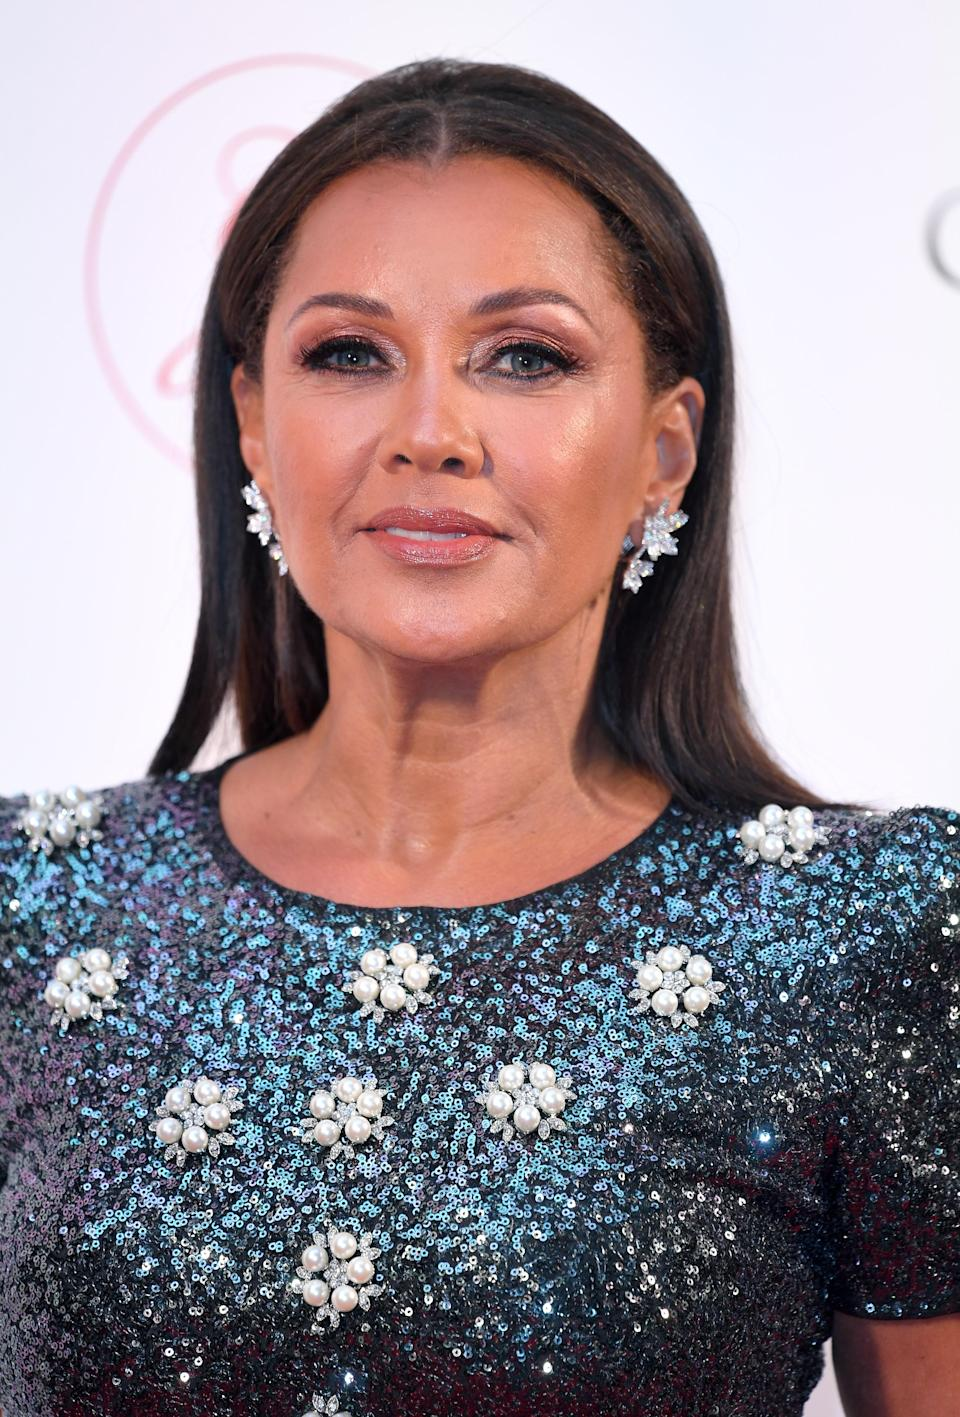 """<p>Vanessa Williams and beauty are pretty much synonymous at this point (she was the first woman of African-American descent to receive the Miss America title, after all). But even Williams is not exempt from the inequity when it comes to how Black hair is treated.</p> <p>""""I've always had to insist on hairstylists who were familiar with Black hair. One, in particular, being Emmy winner <a href=""""https://www.instagram.com/oscarjameshair/?hl=en"""" rel=""""nofollow noopener"""" target=""""_blank"""" data-ylk=""""slk:Oscar James"""" class=""""link rapid-noclick-resp"""">Oscar James</a>, who has done my hair for over 20 years now,"""" she said during an interview for the <a href=""""https://podcasts.apple.com/us/podcast/vanessa-williams-identity-politics/id1491996913?i=1000486118926"""" rel=""""nofollow noopener"""" target=""""_blank"""" data-ylk=""""slk:My Colorful Nana Podcast"""" class=""""link rapid-noclick-resp""""><em>My Colorful Nana Podcast</em></a>. """"Those stylists are aware of heat limitations, damaging products, wig/hairpieces blending, proper comb- and brush-throughs, and overall technique. There are many hairstylists that say they can do Black hair, but then, unfortunately, they fail miserably.""""</p>"""